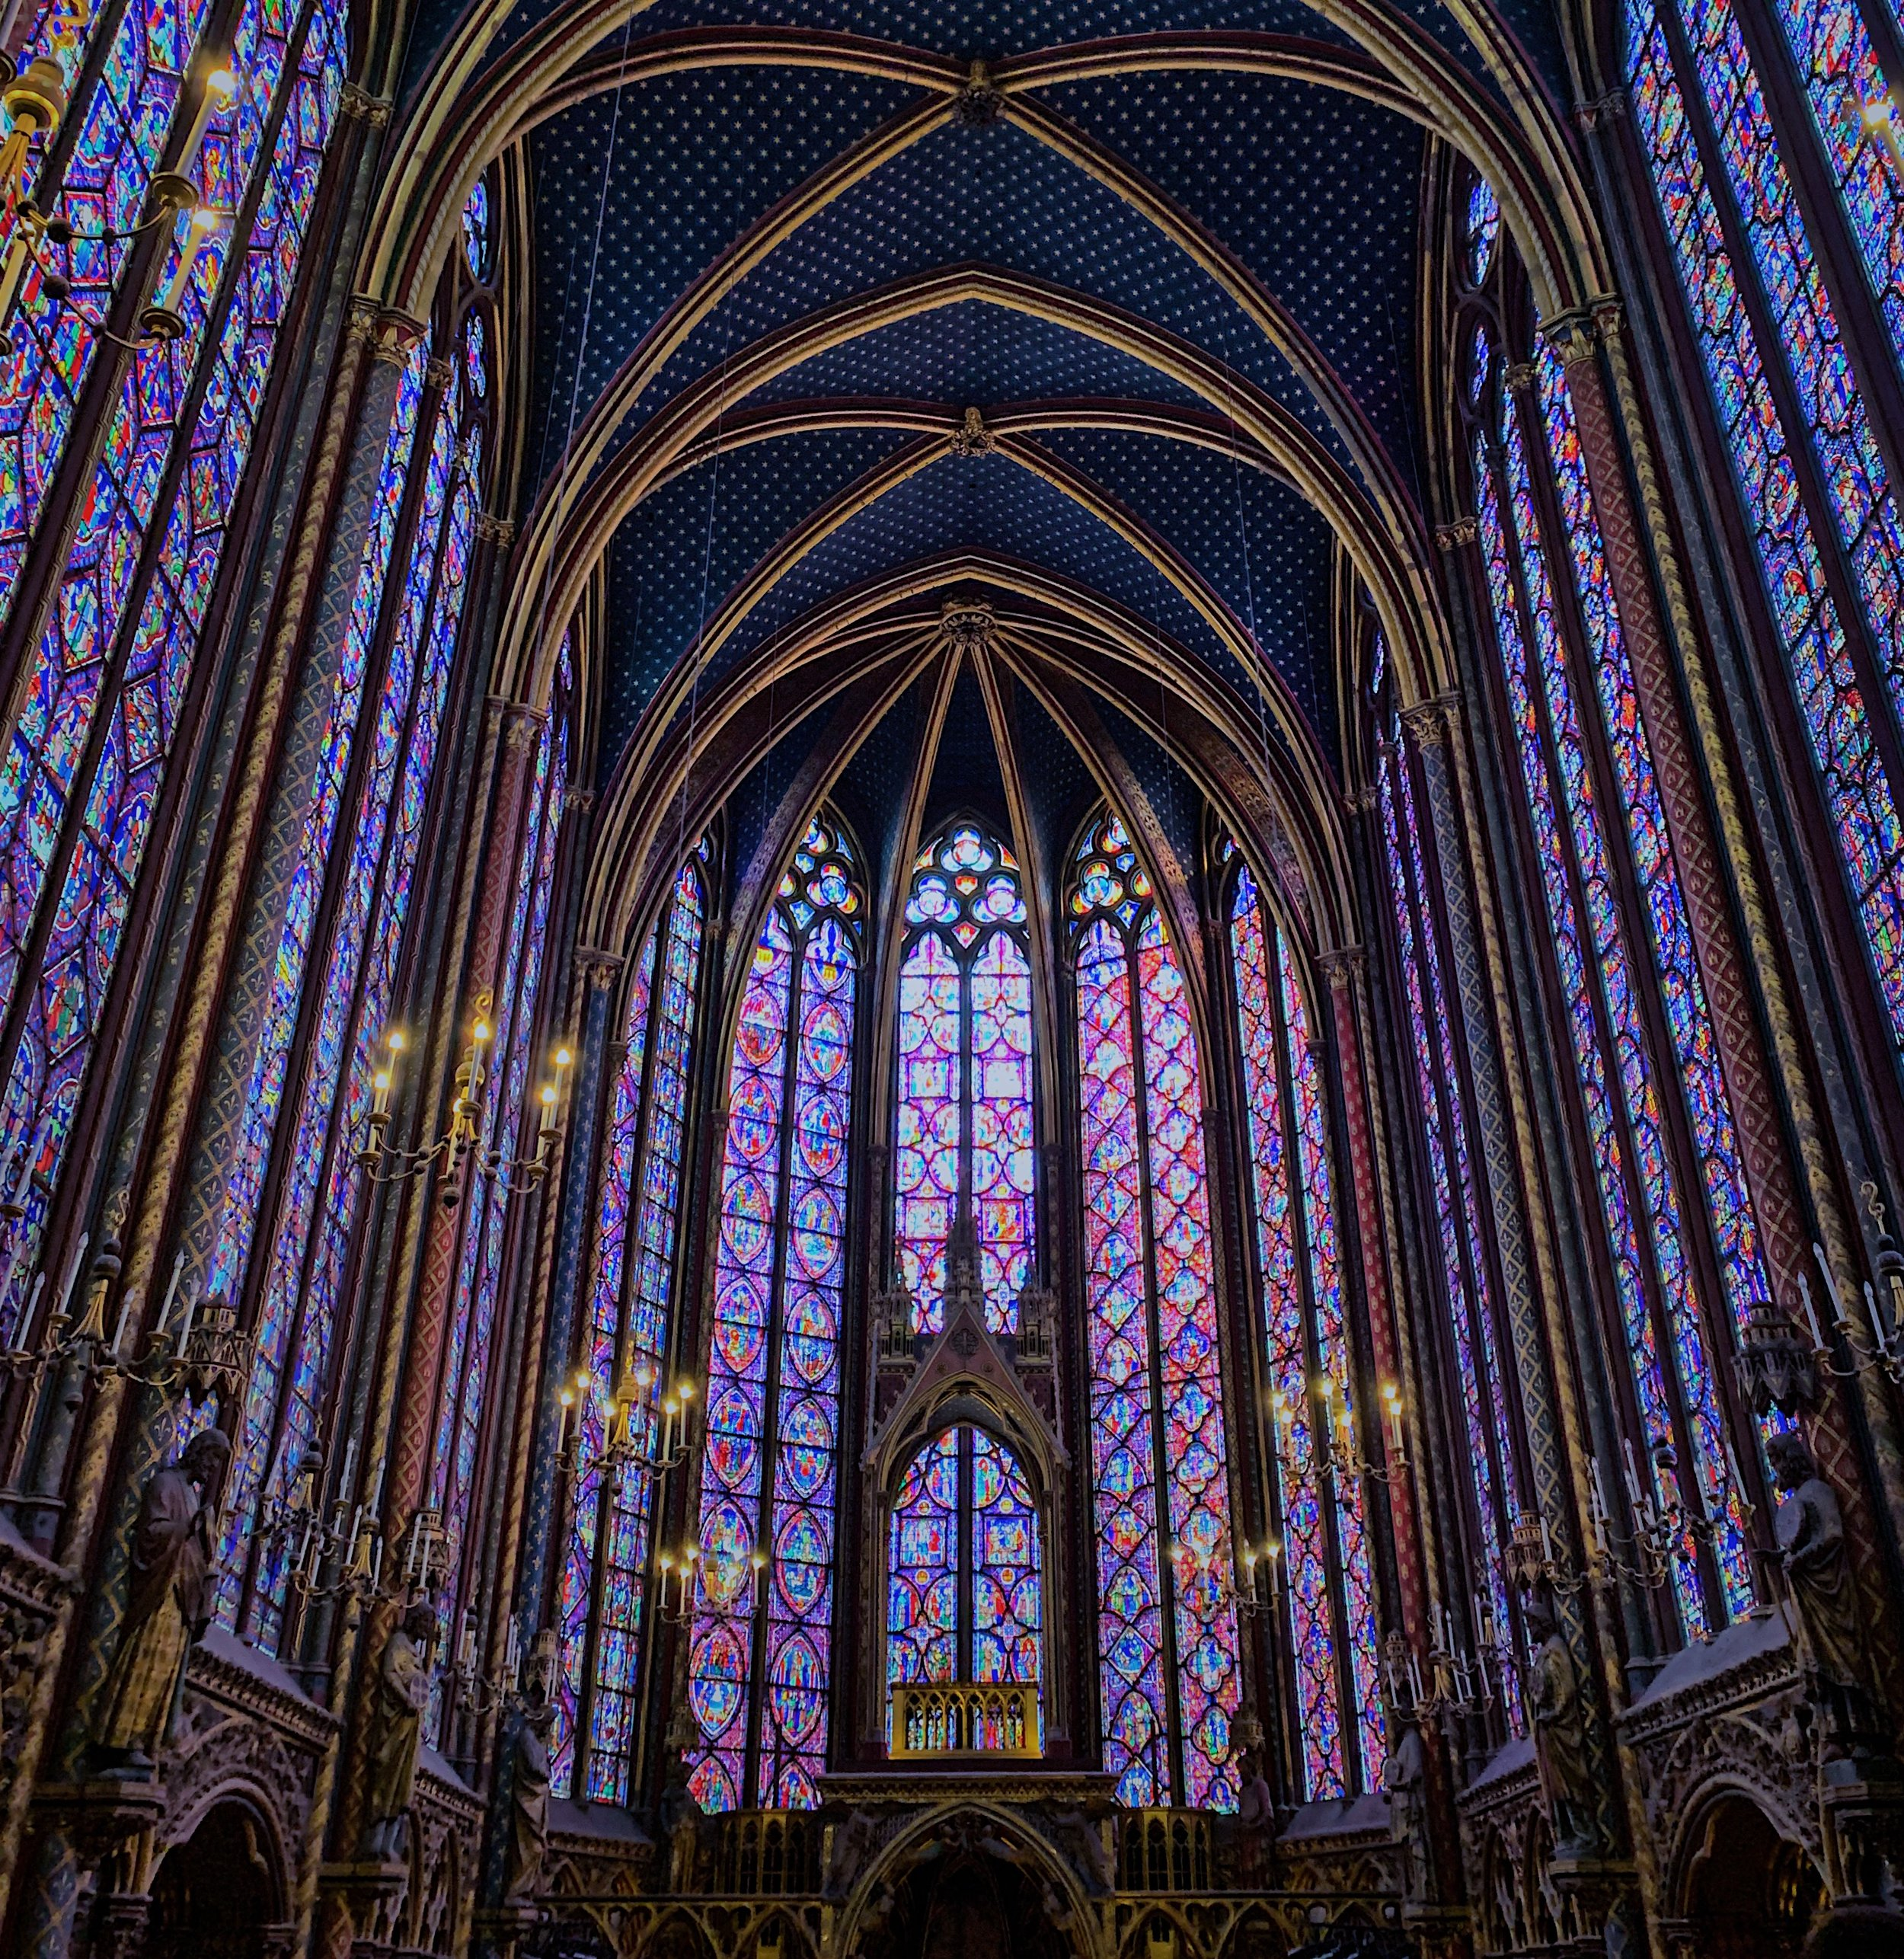 Glorious stained glass of Sainte-Chapelle